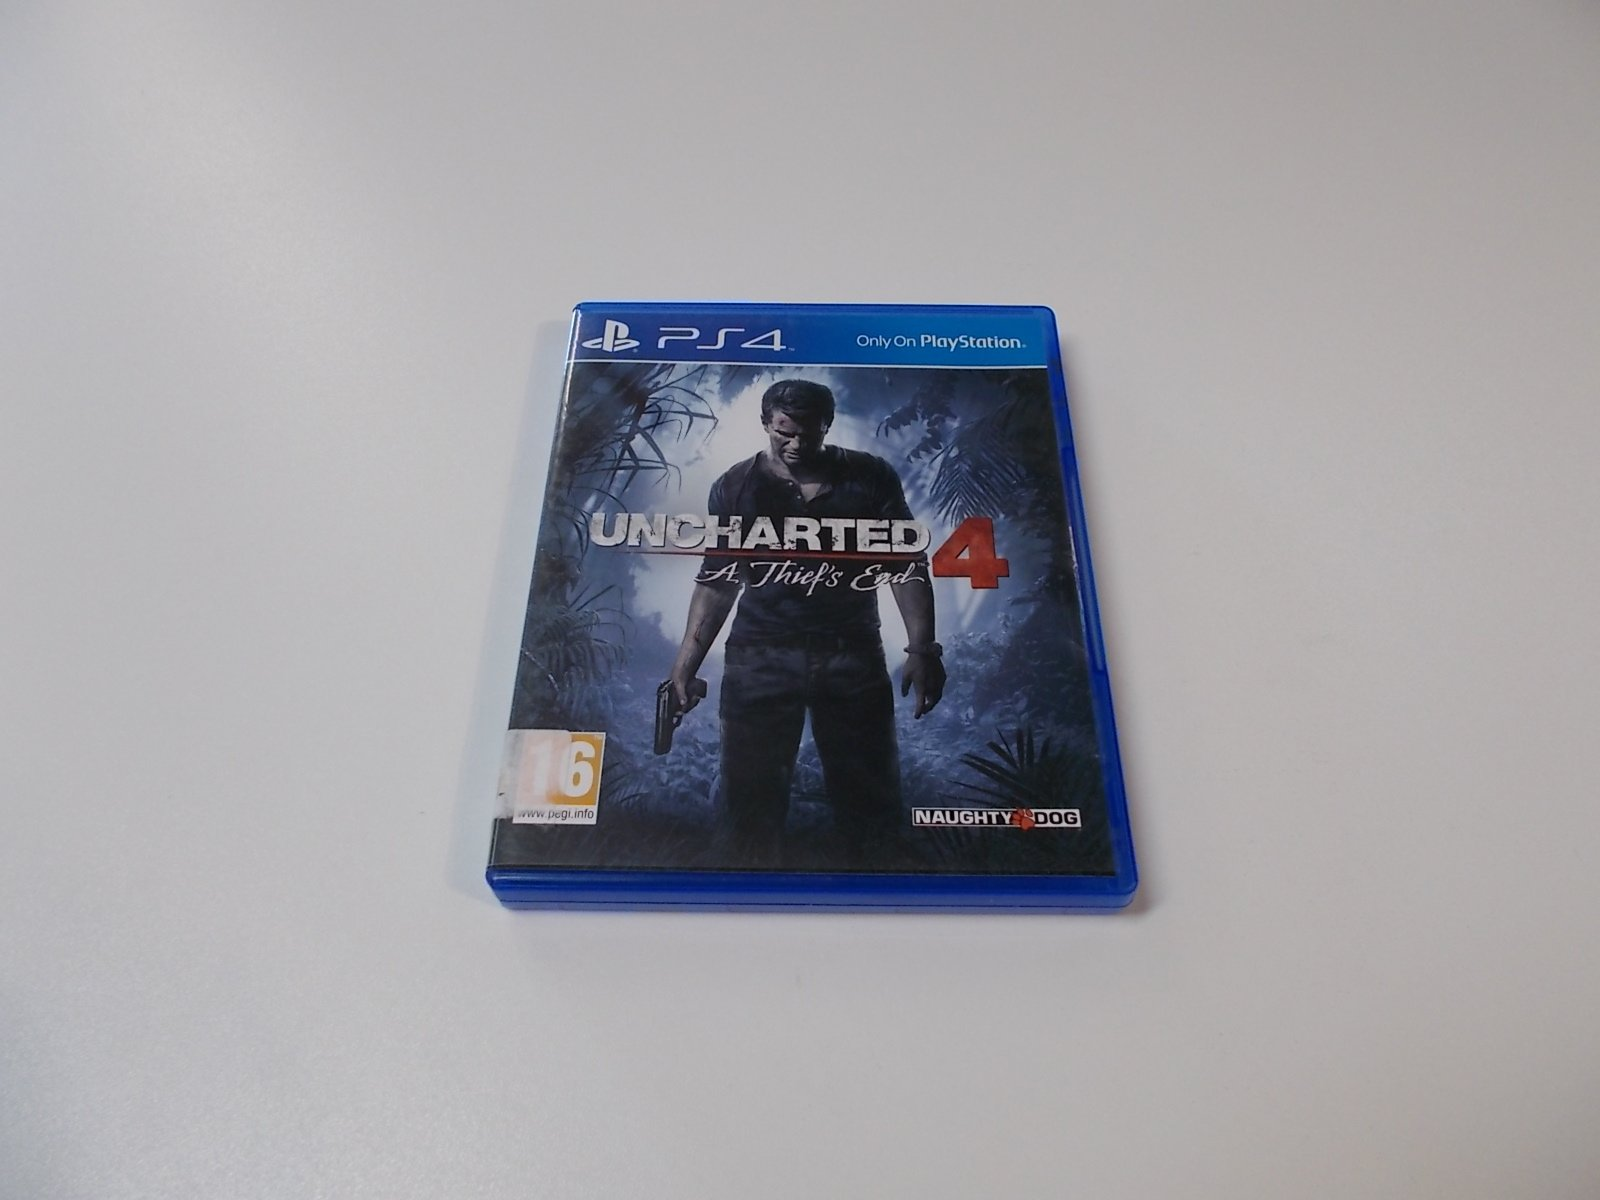 Uncharted 4: A Thief's End - GRA Ps4 - Opole 0535